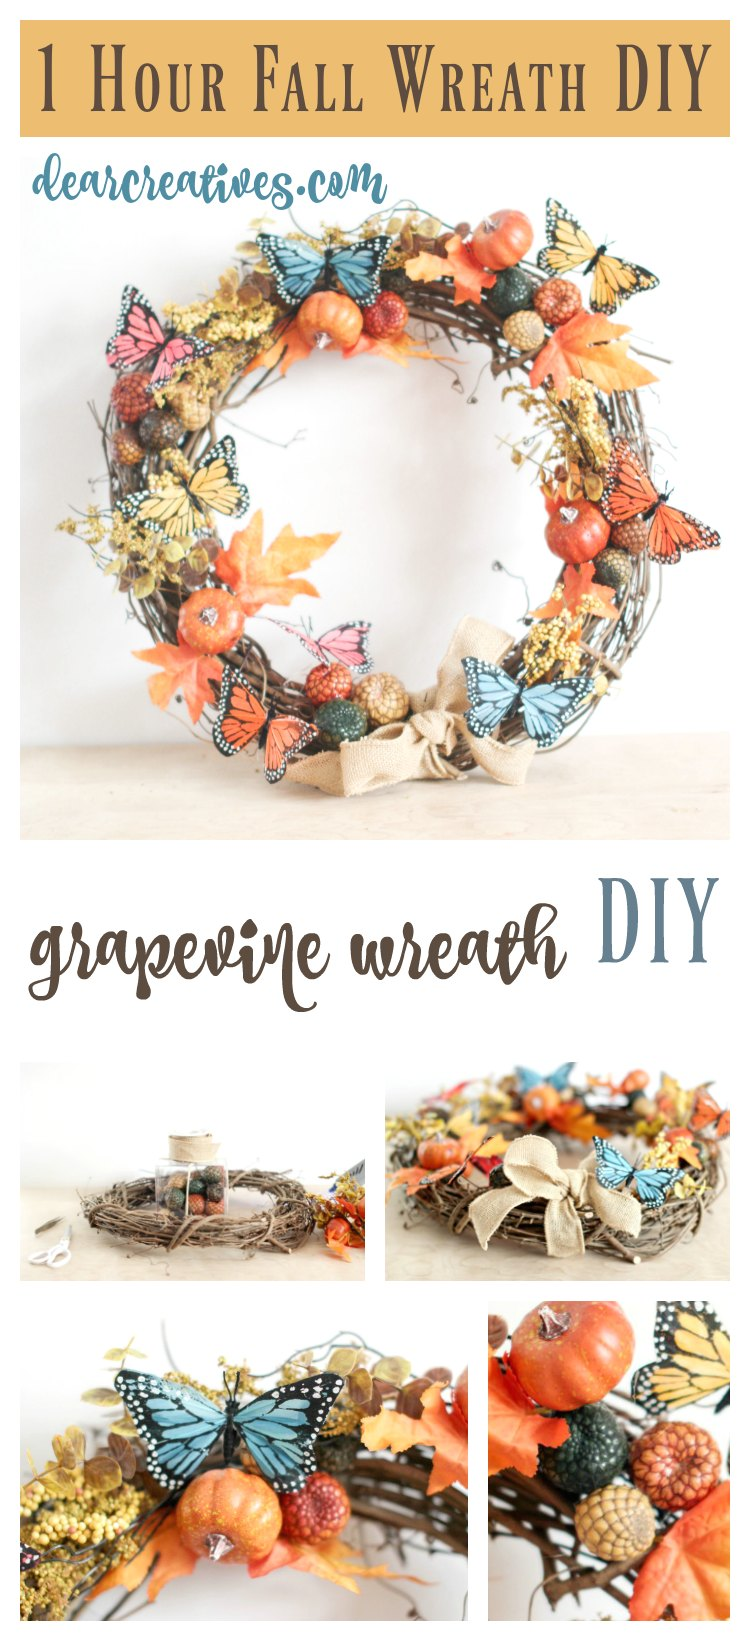 How To Decorate A Fall Wreath In An Hour